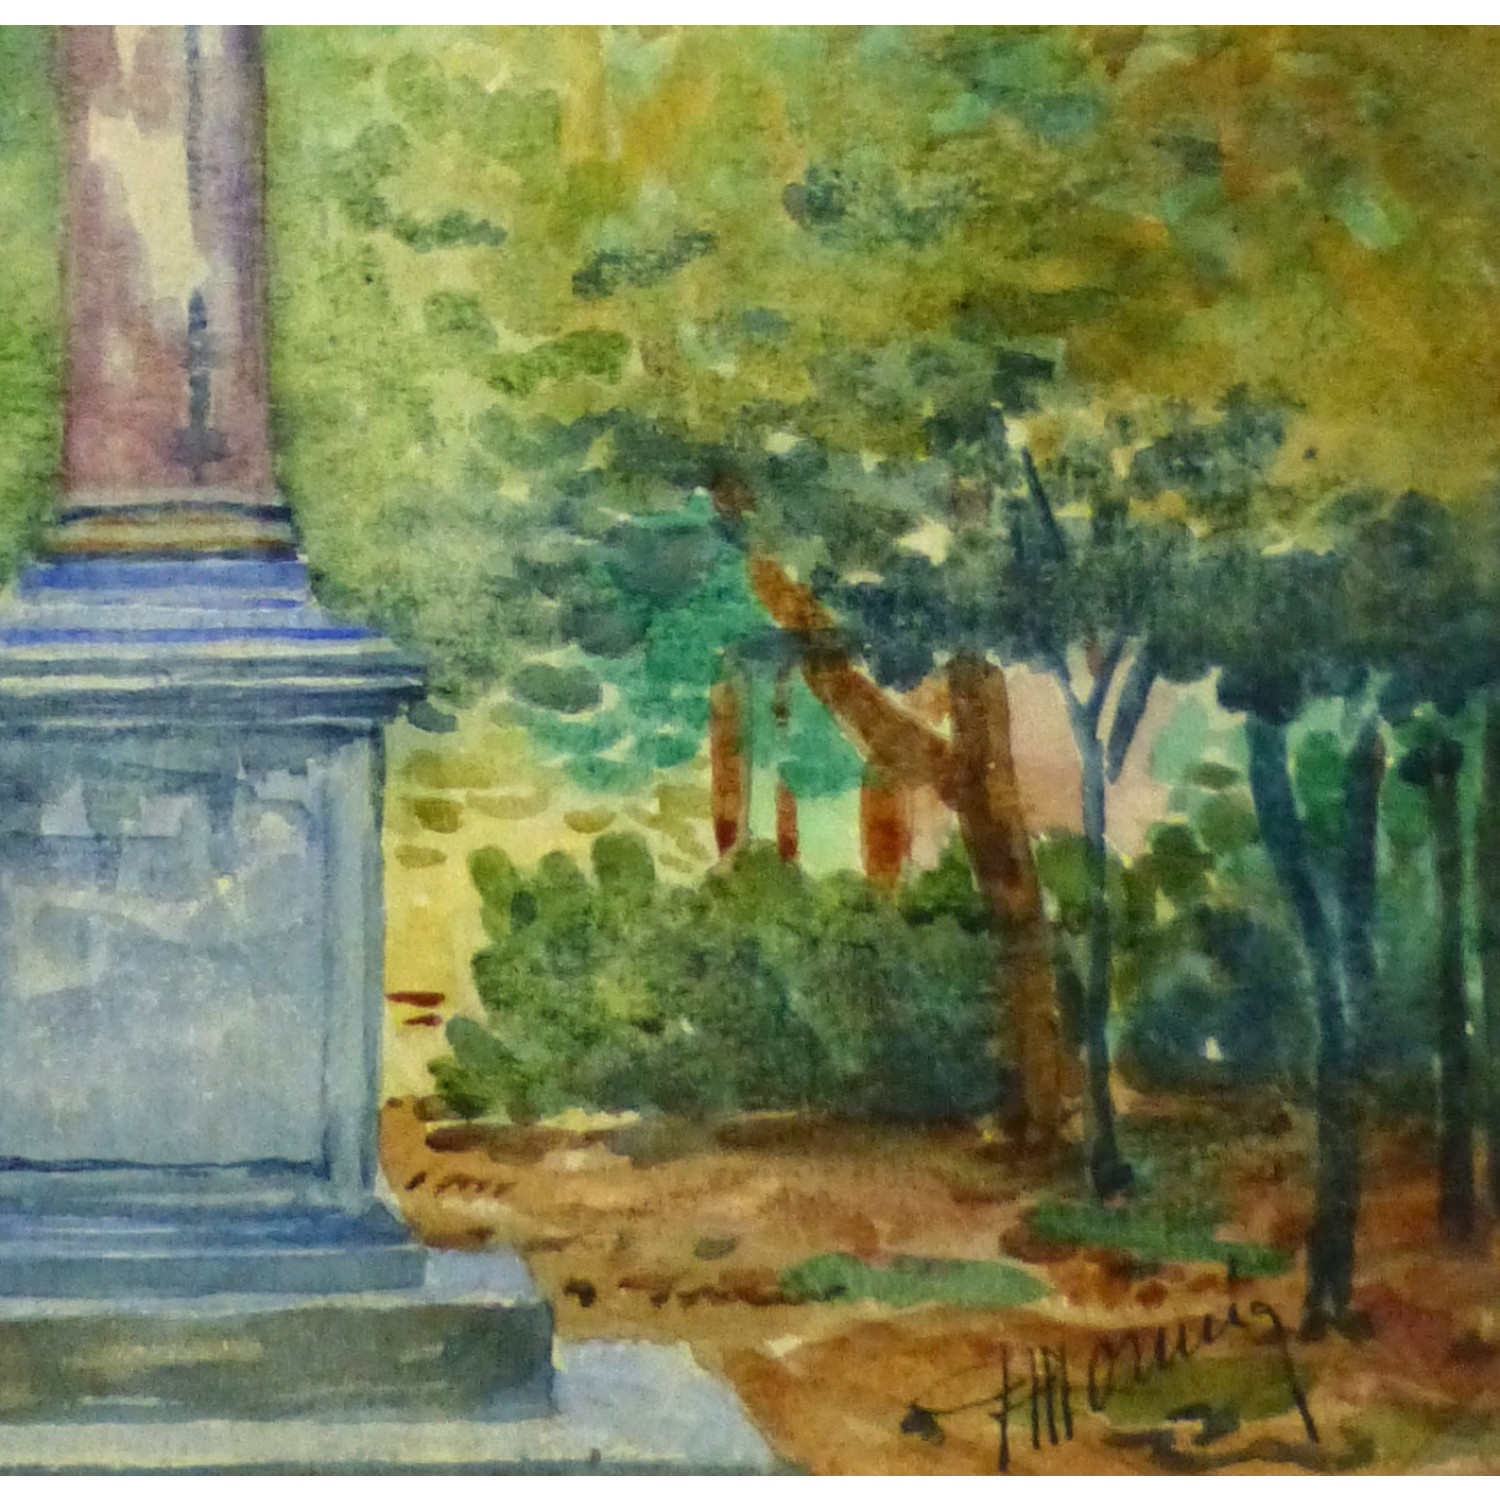 Watercolor Landscape of French Monument in Apt - Signature Detail